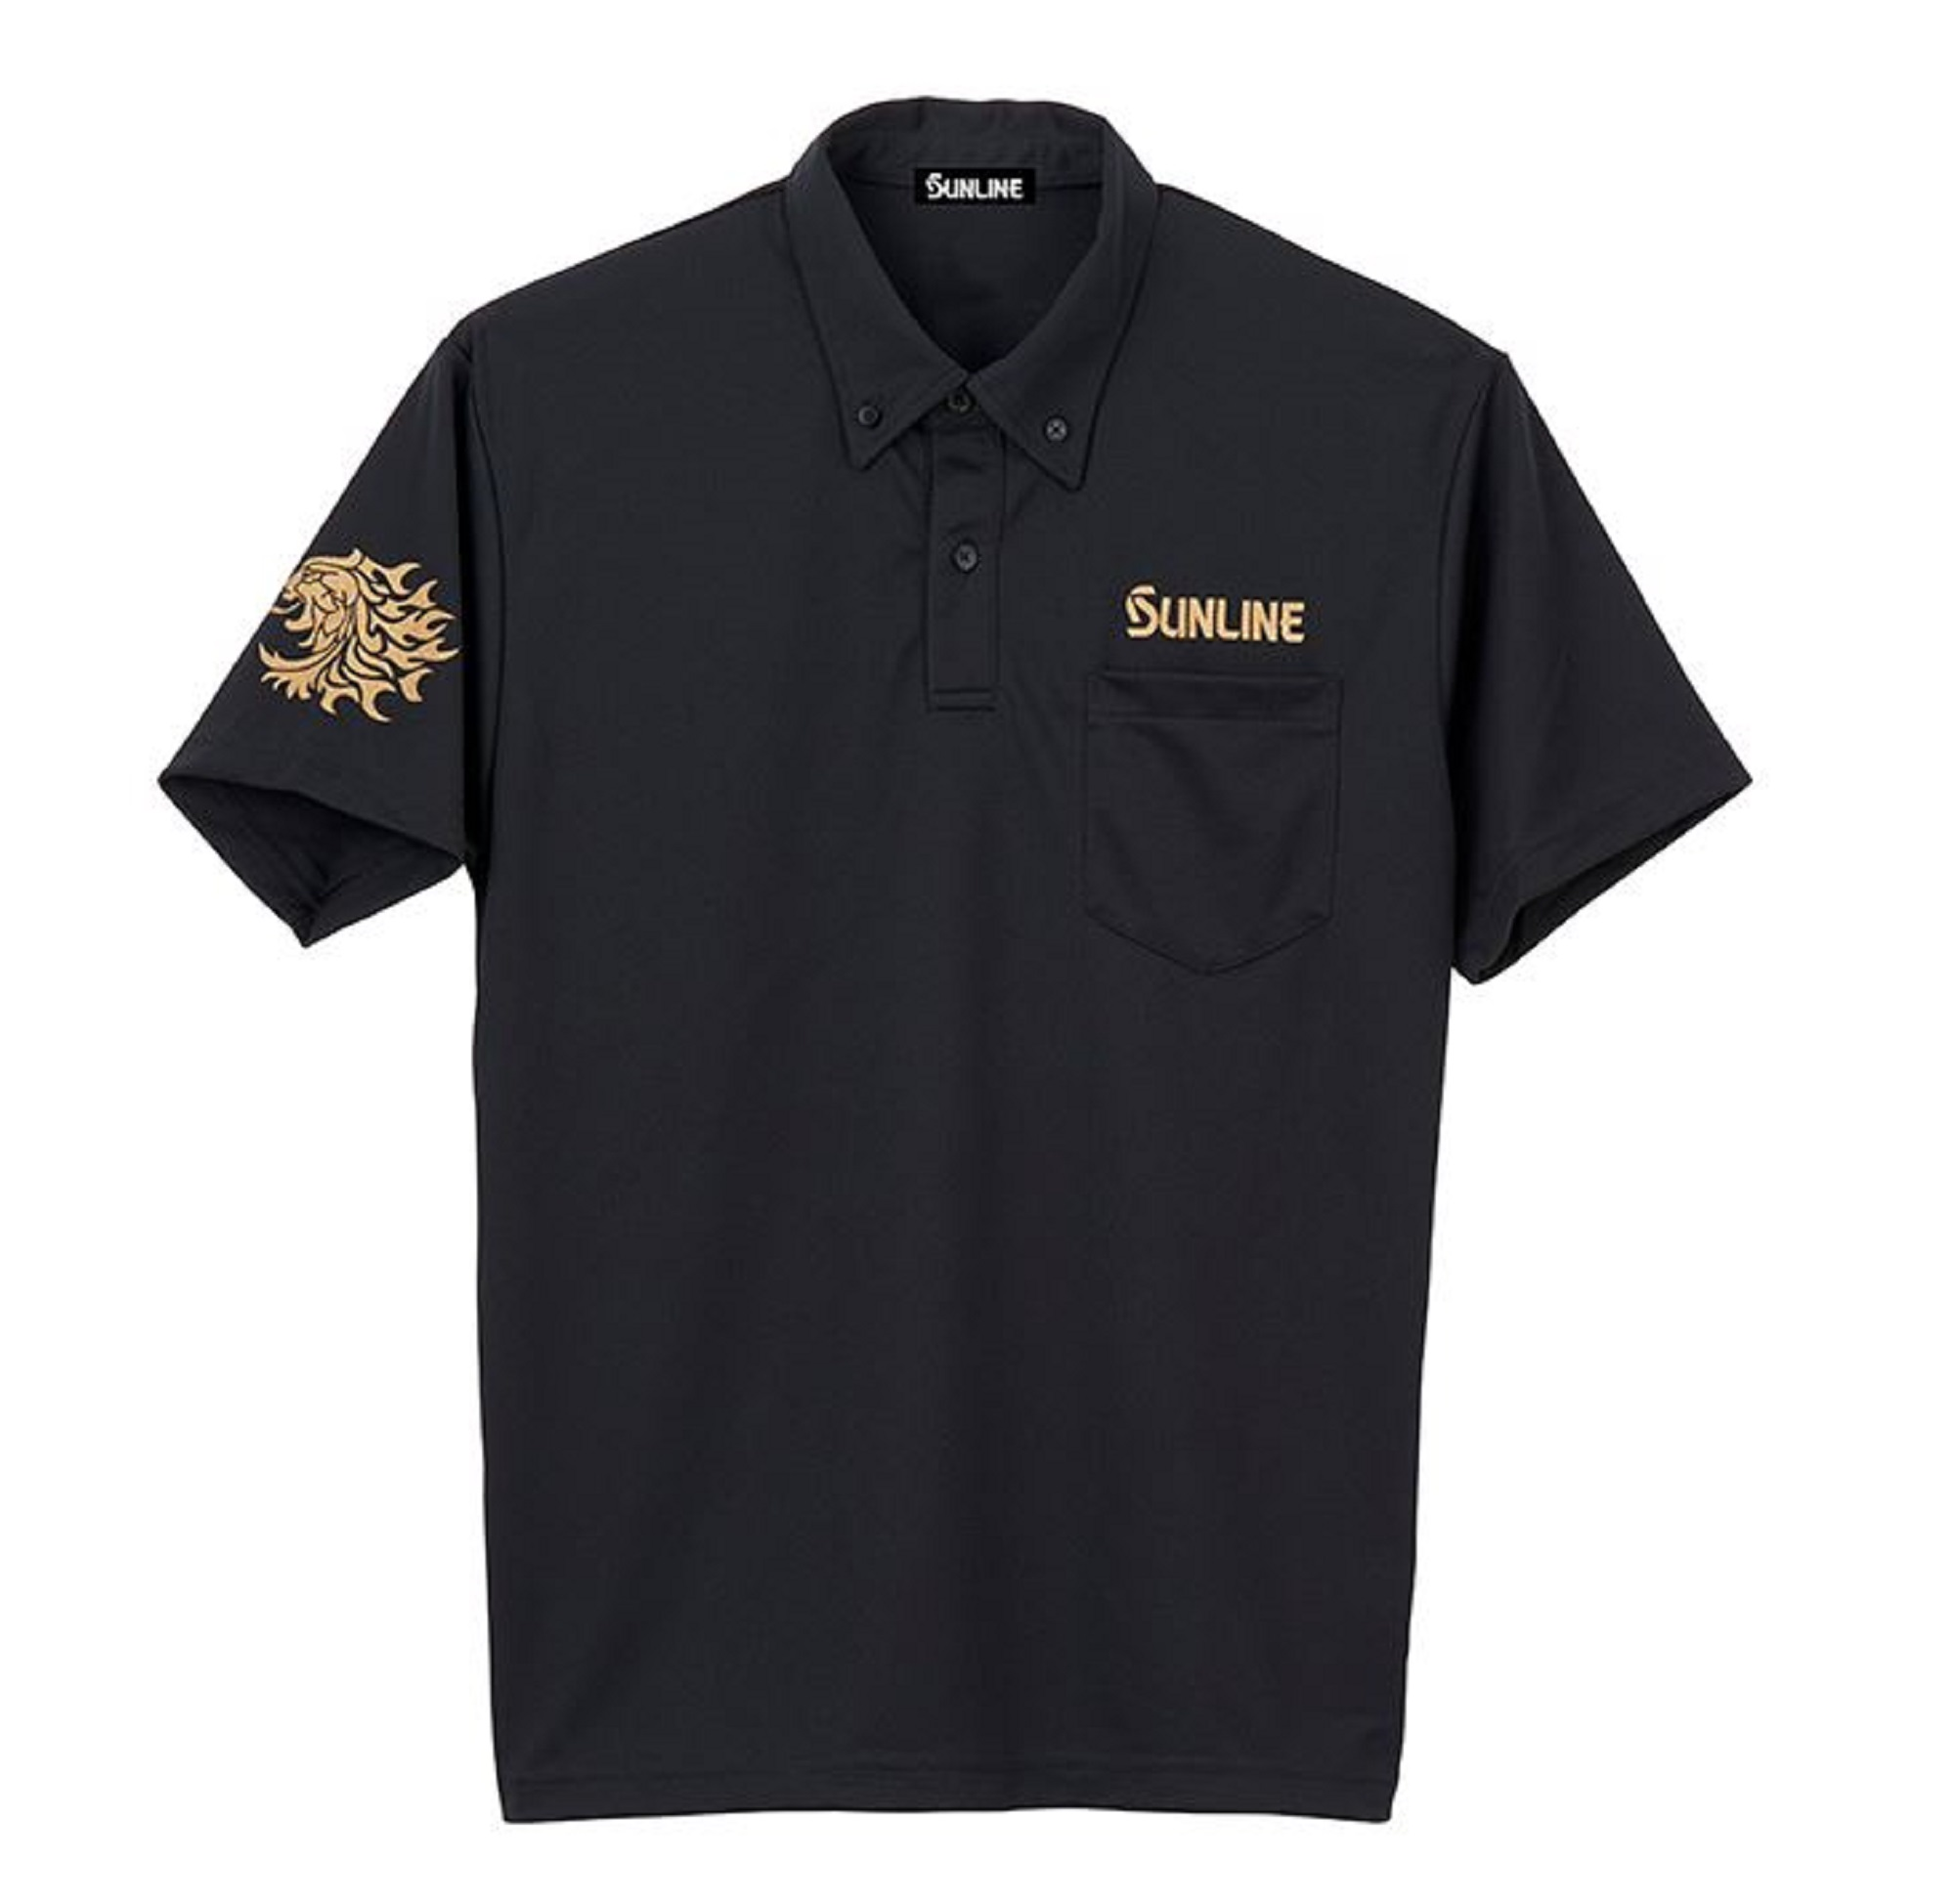 Sunline SUW-15025DP Polo Shirt Dri Fit Short Sleeve Black Size L (3897)